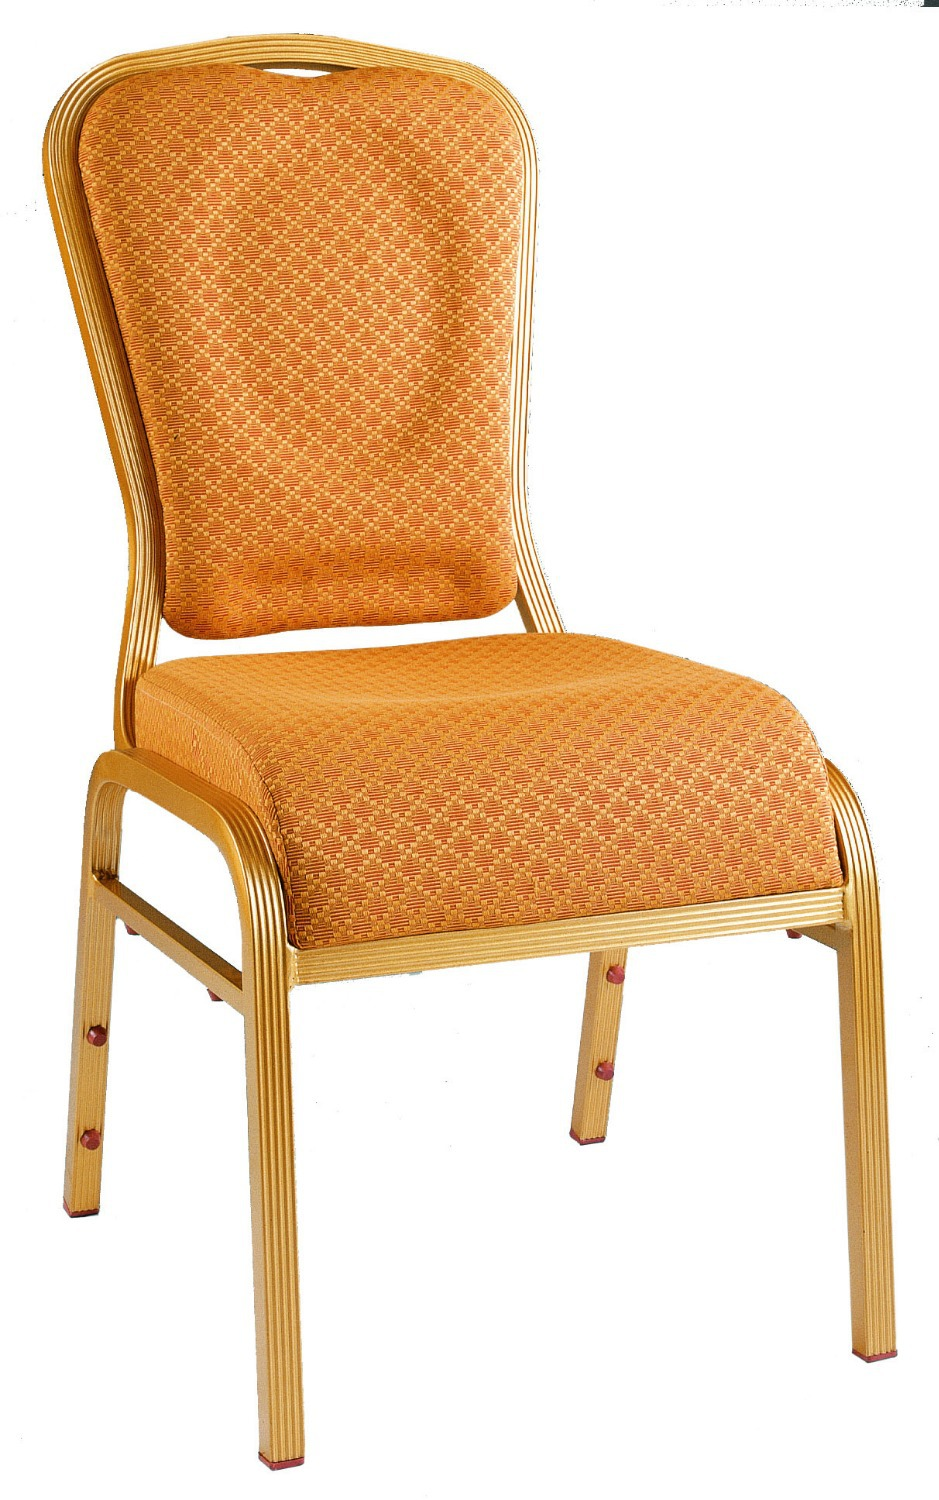 wholesale quality strong gold aluminum vip banquet chairs LQ-L13100<br>